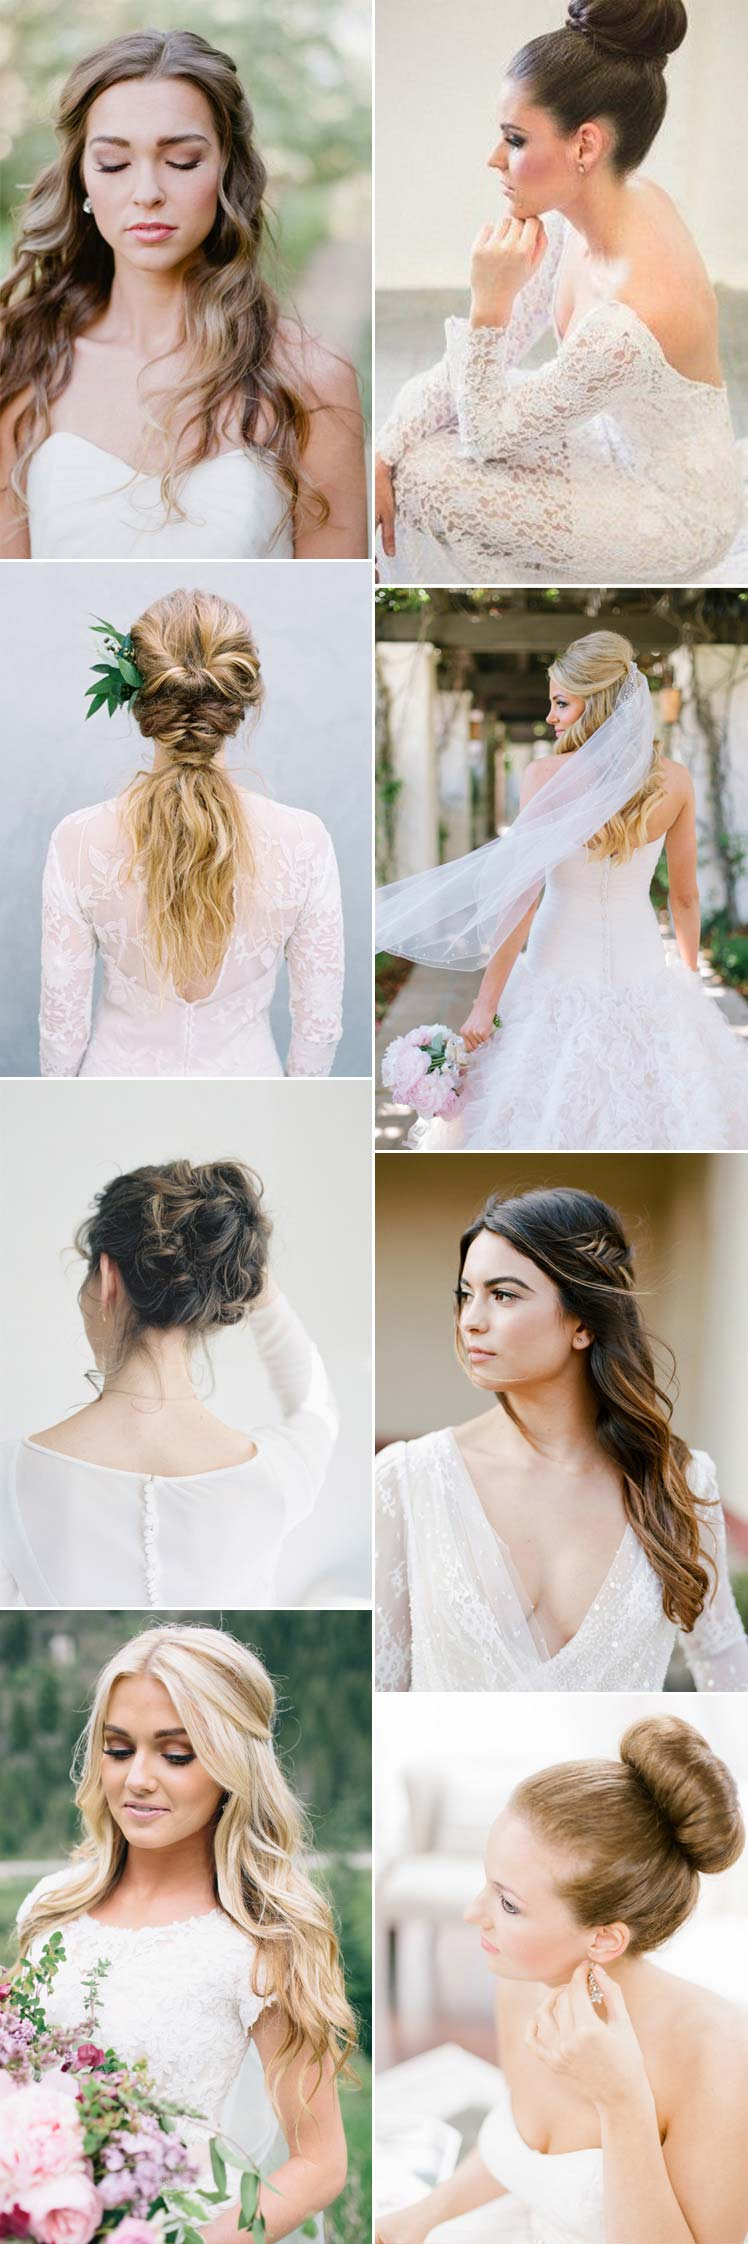 Beautiful Wedding Hairstyles for 2017 Brides | Glitzy Secrets